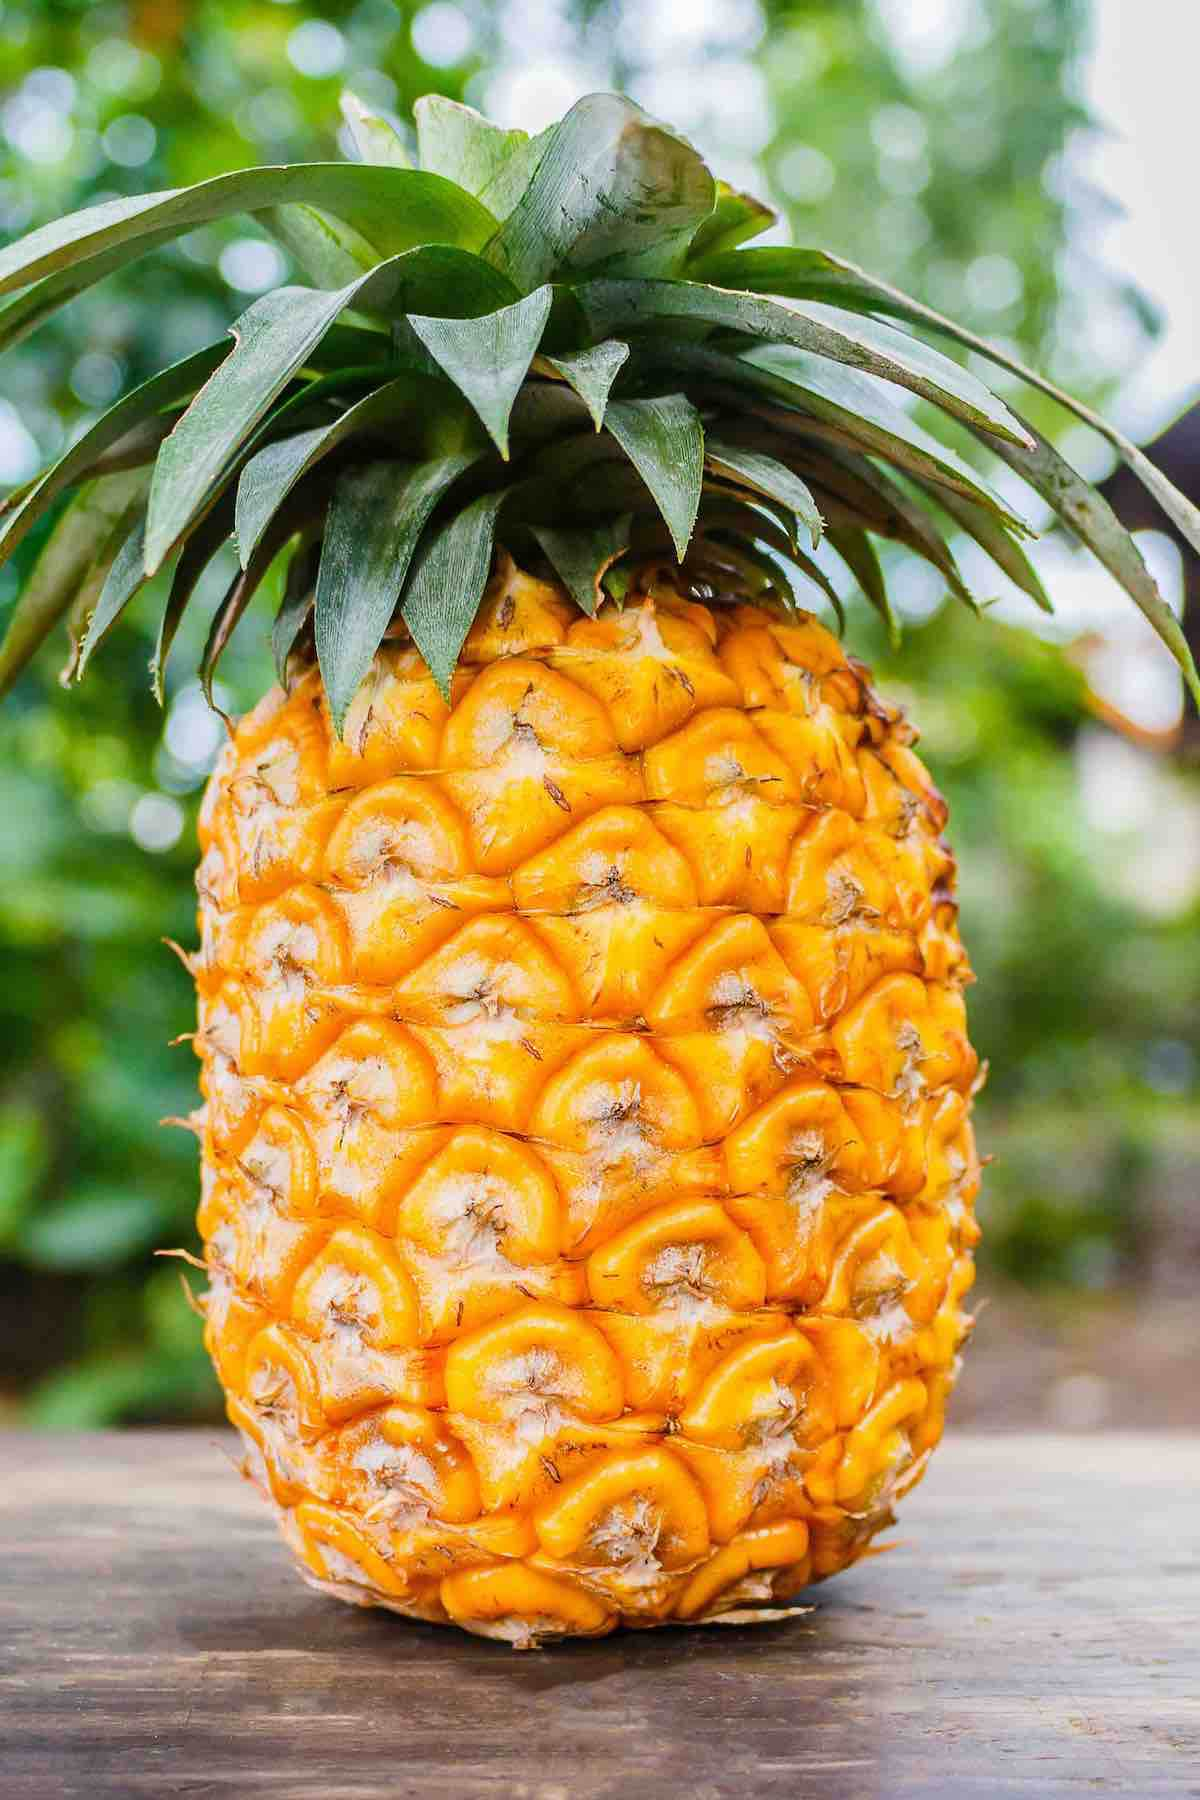 A perfectly ripe pineapple with golden colored skin